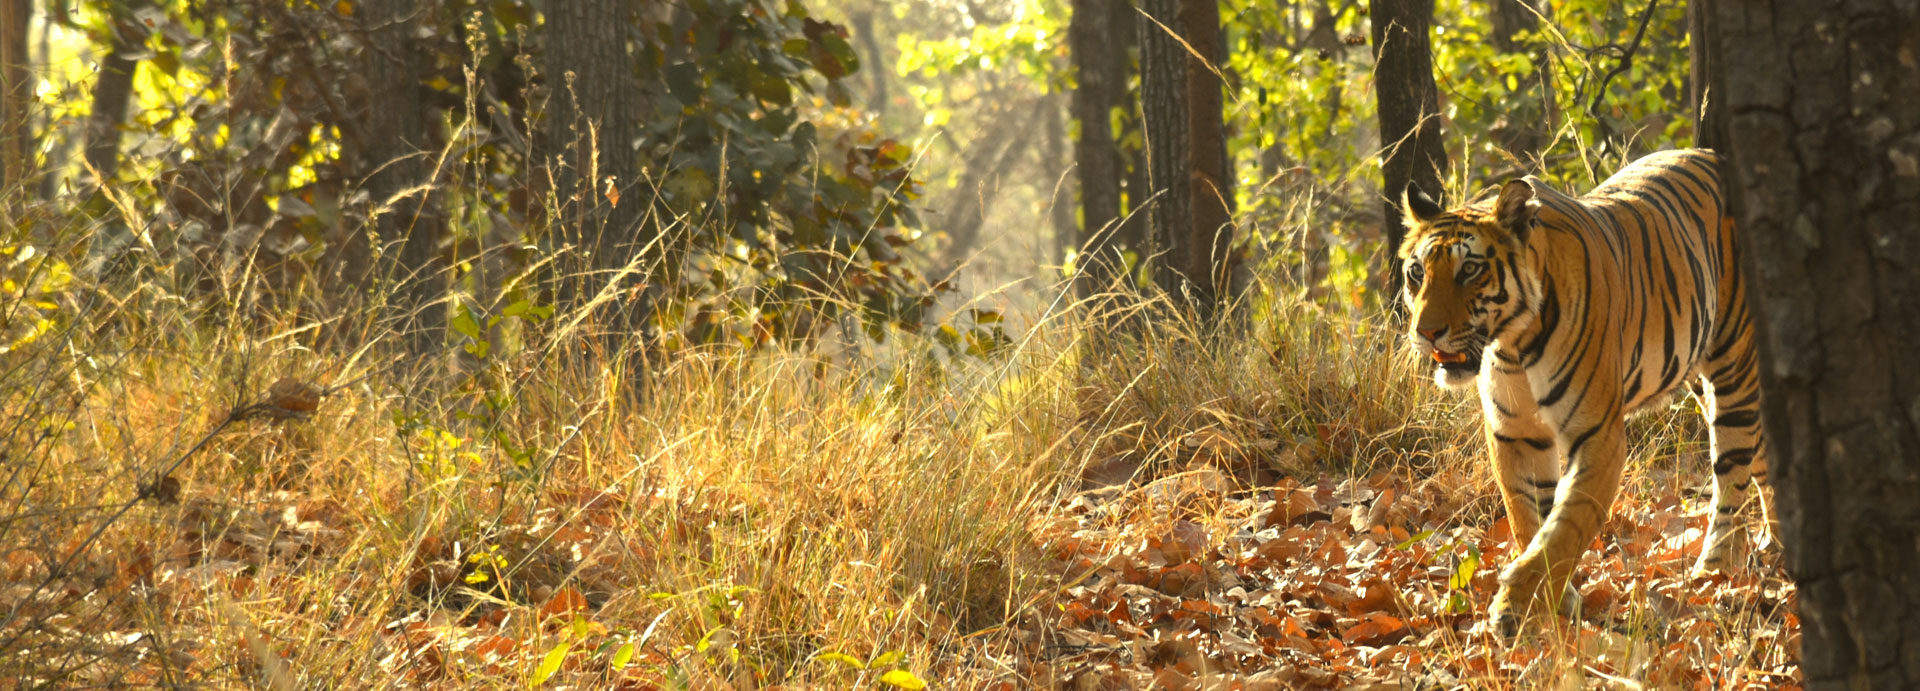 Tiger sighting at bandhavgarh National Park